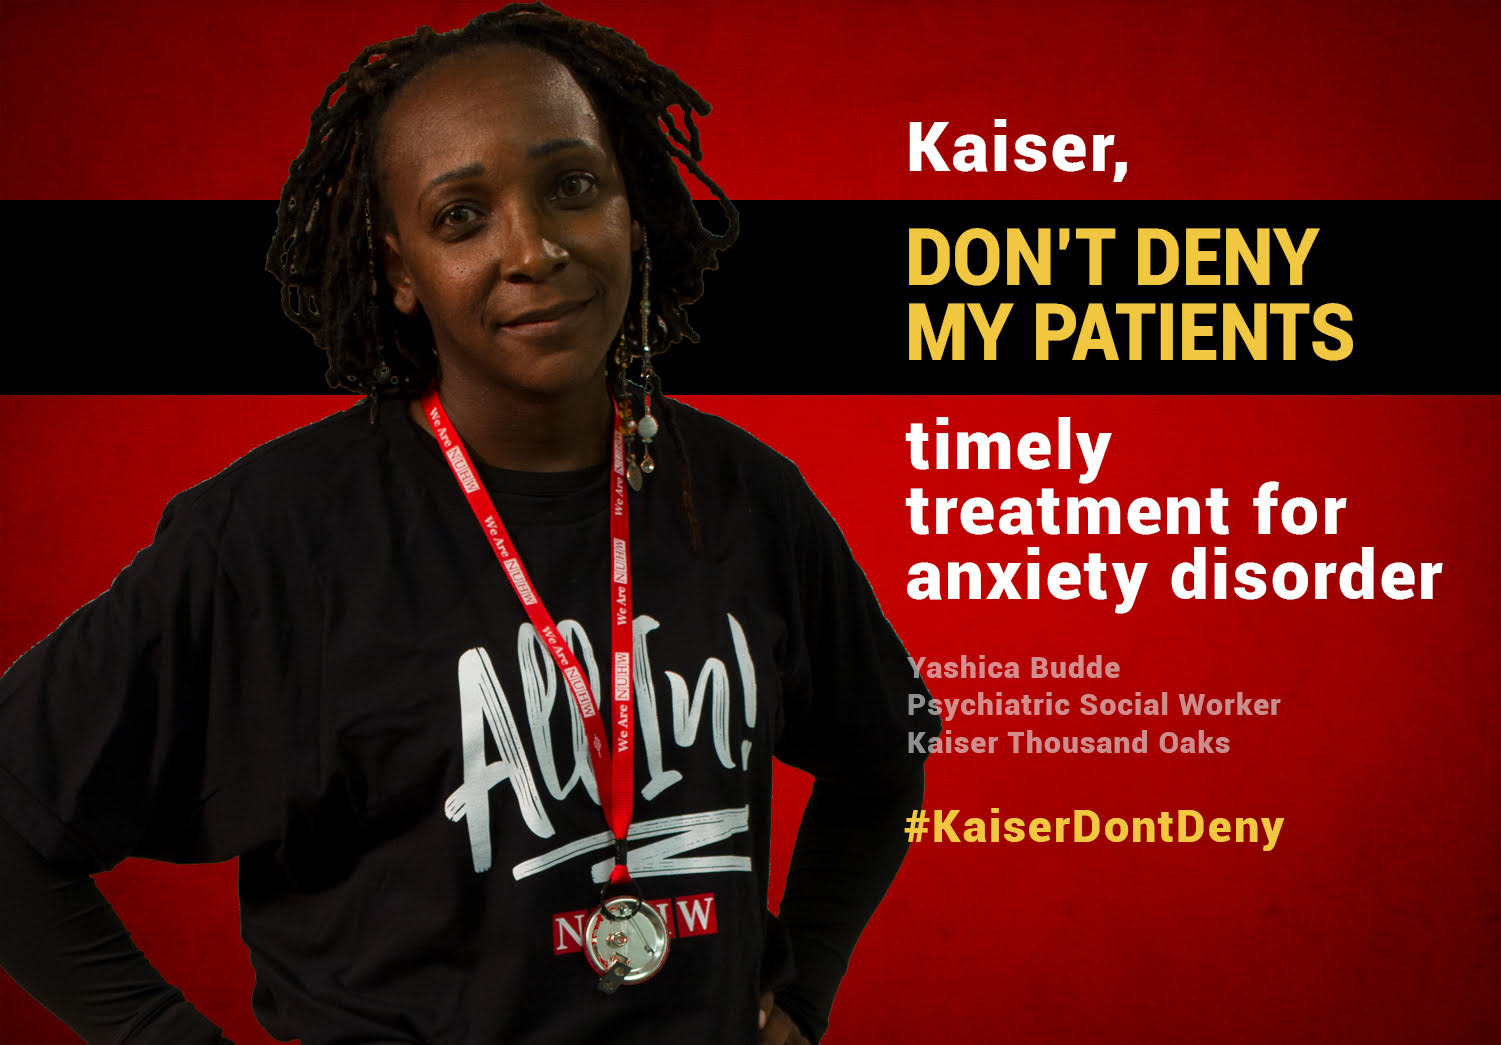 Kaiser, don't deny my patients timely treatment for anxiety disorder. -- Yashica Budde, Psychiatric Social Worker, Kaiser Thousand Oaks